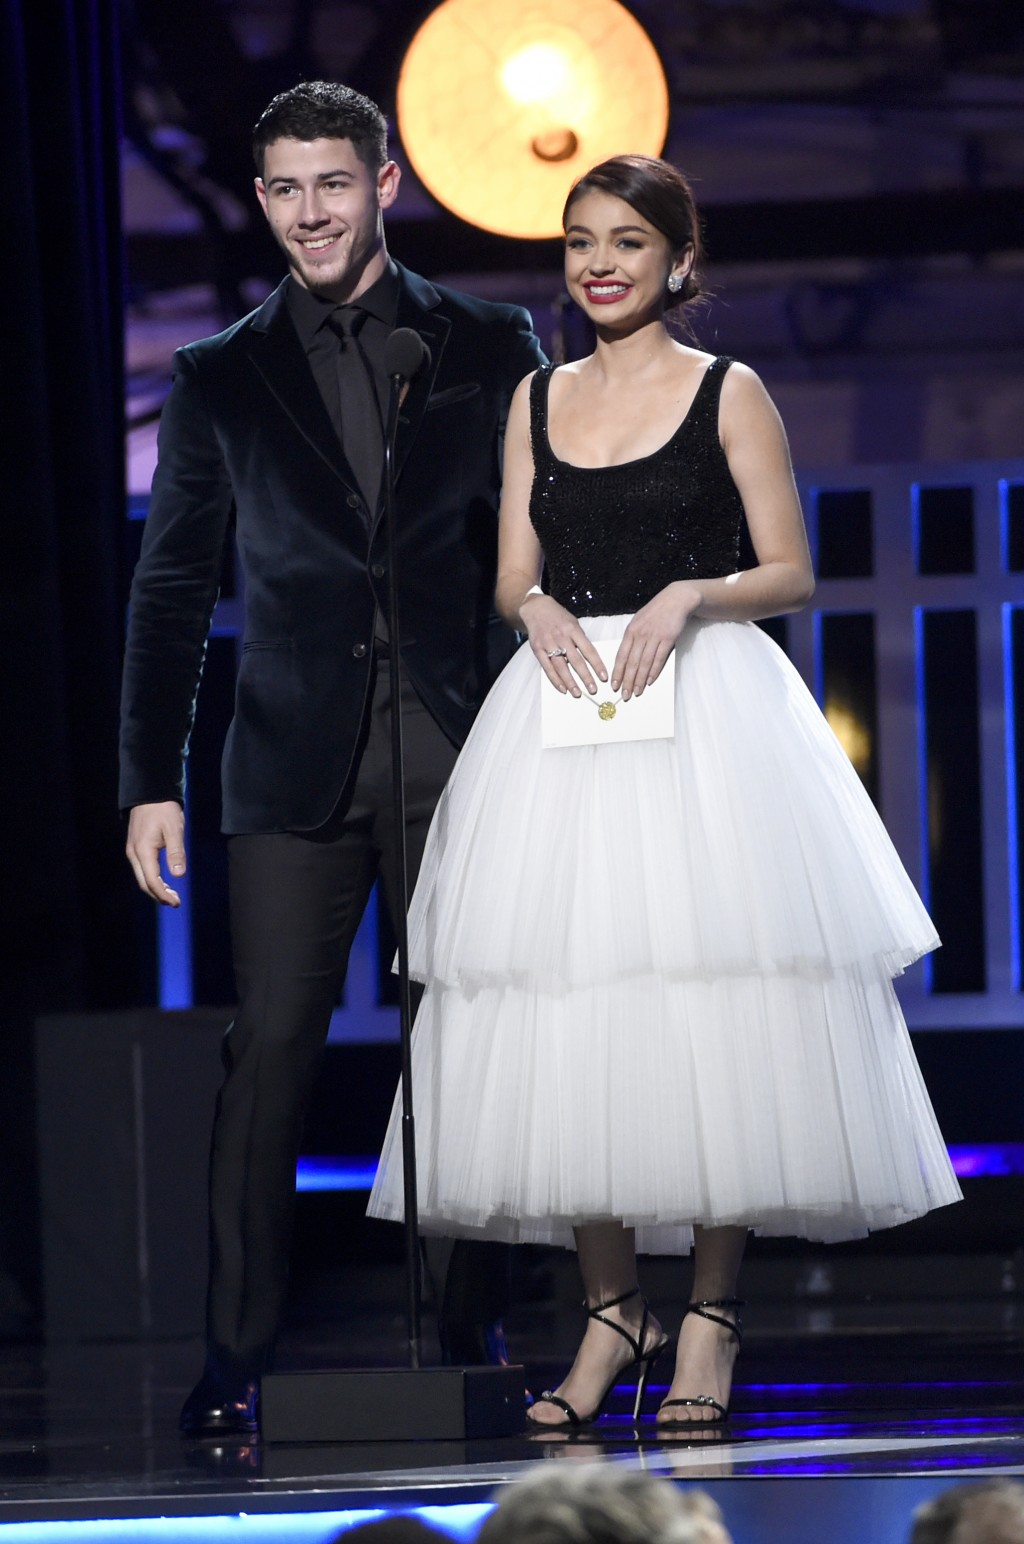 Nick Jonas, left, and Sarah Hyland present the award for best actor in a movie made for TV or limited series at the 23rd annual Critics' Choice Awards